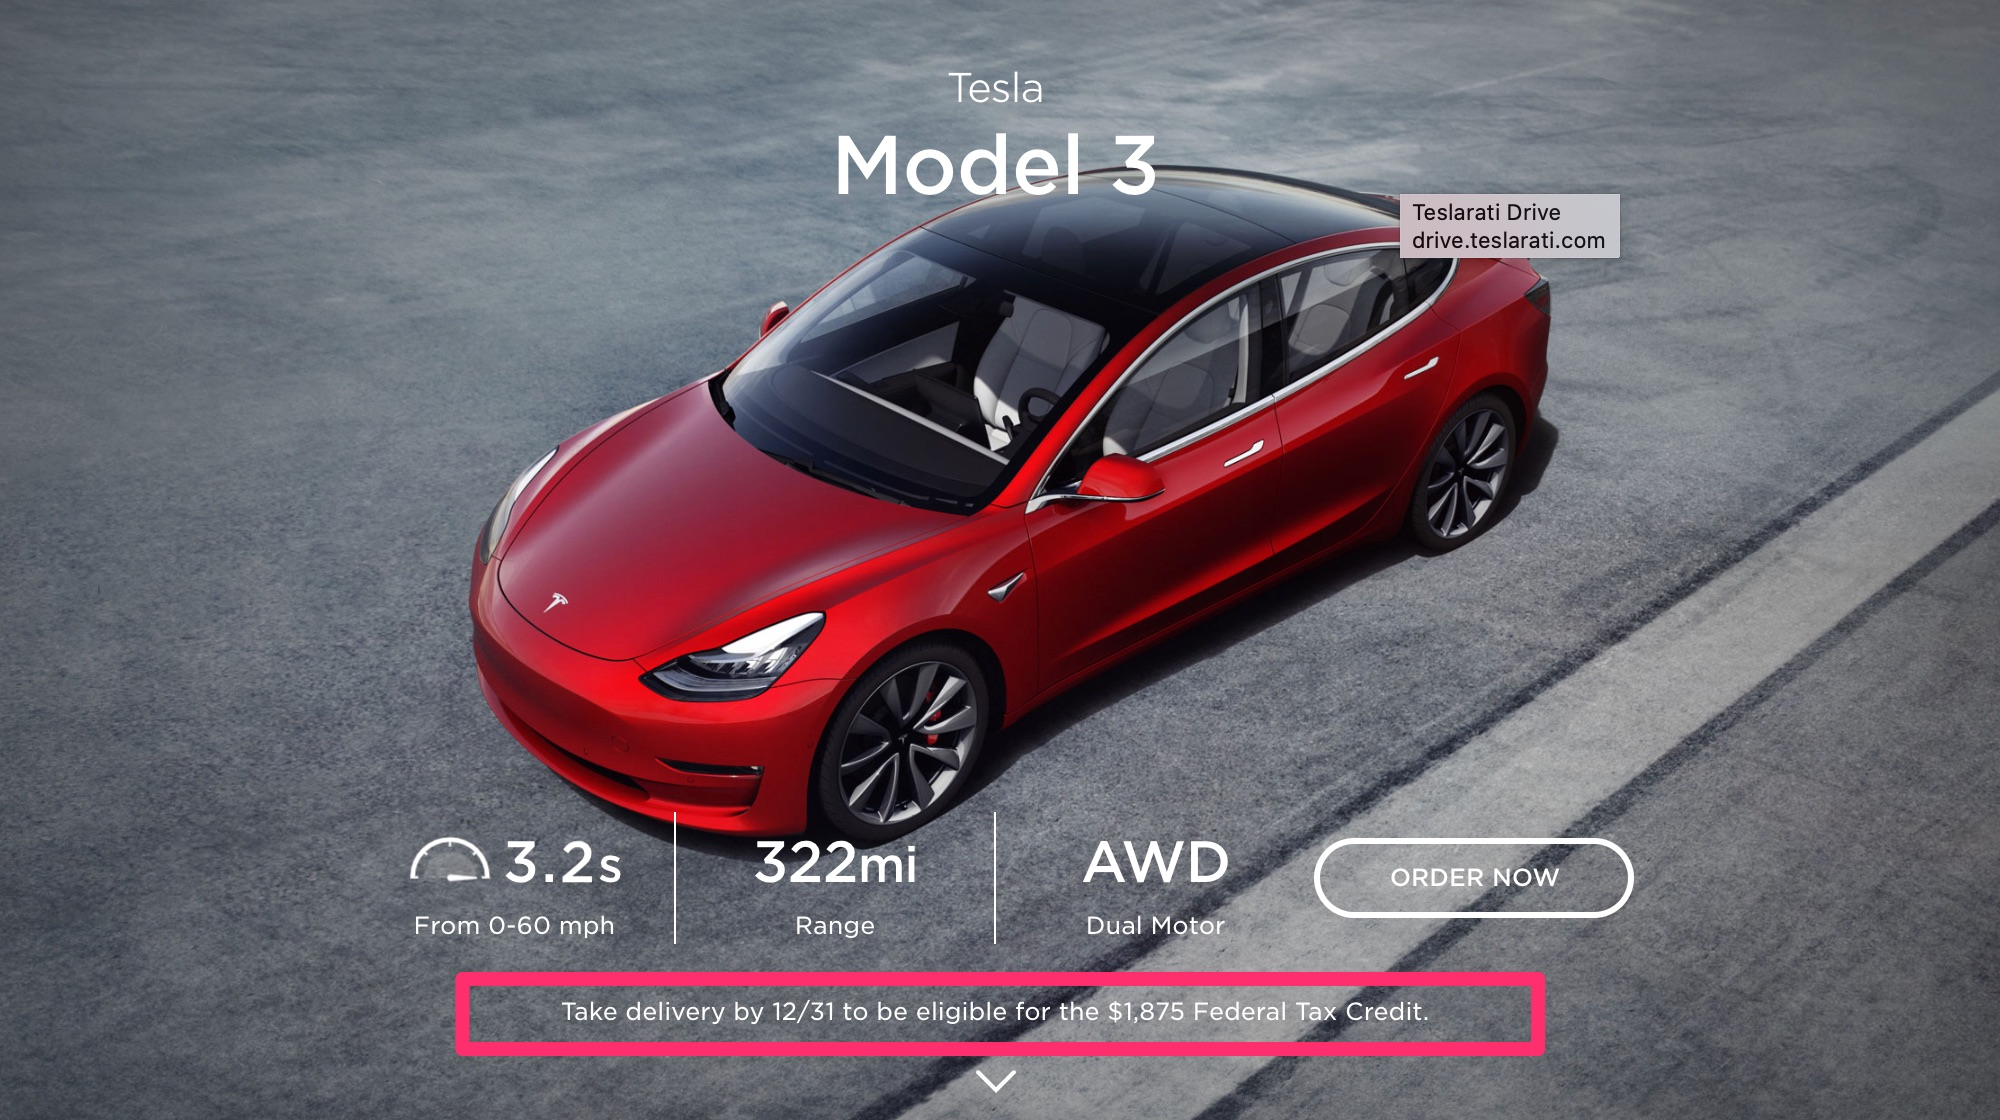 Tesla adjusts Model 3 pricing in final 2019 push as EV tax credits come to an end